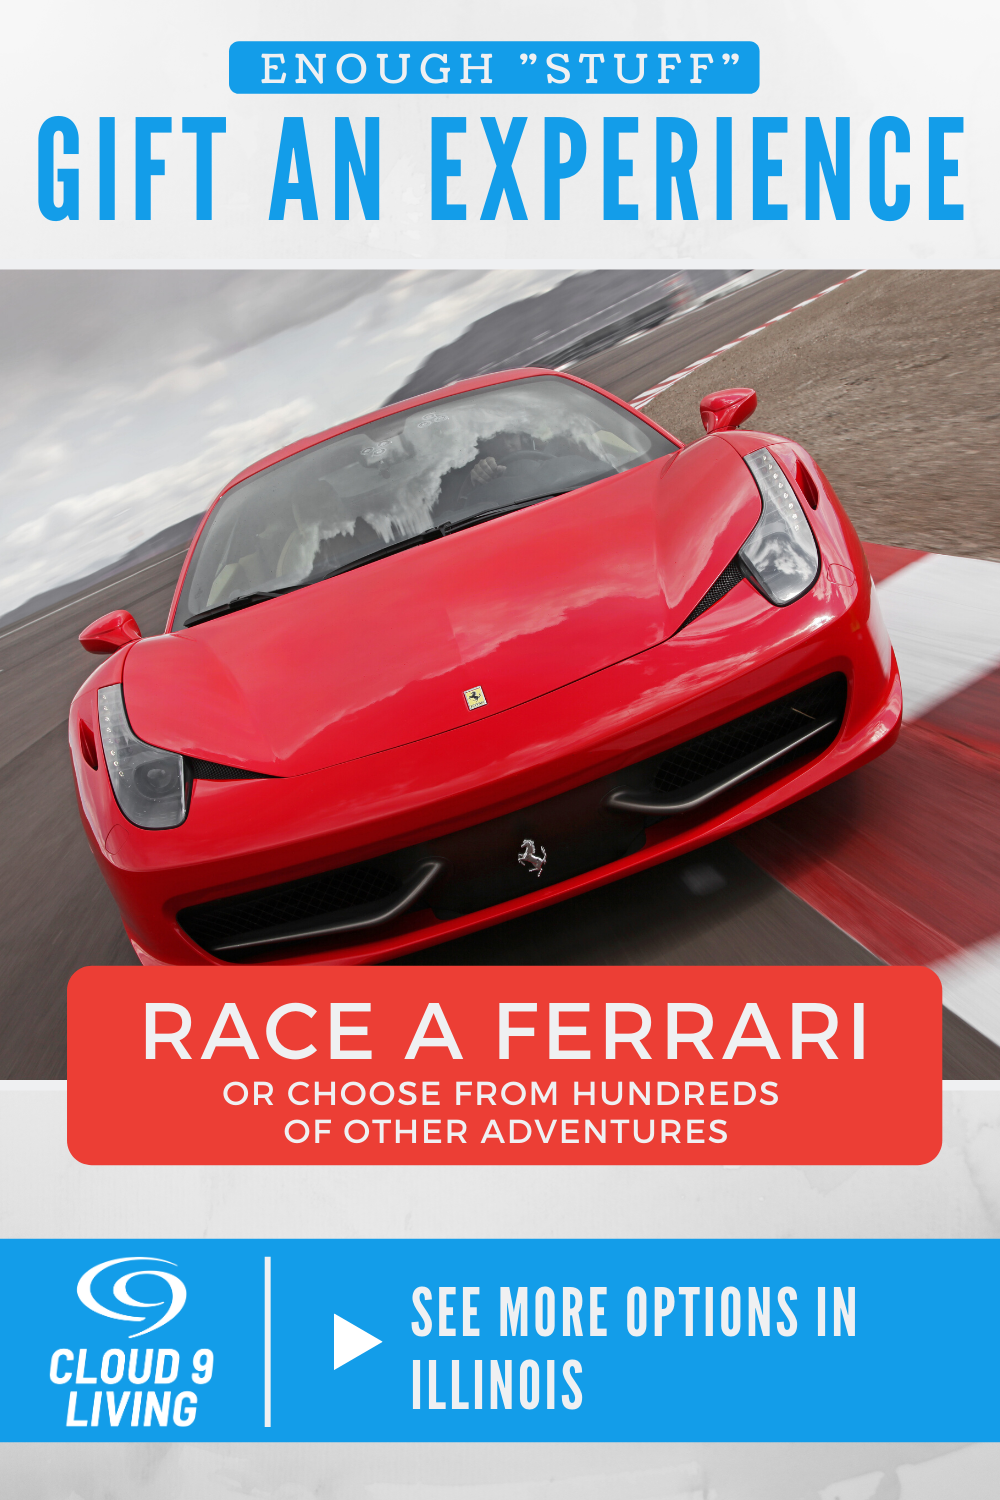 Gifts For Him Driving Experience Ferrari Cloud 9 Living